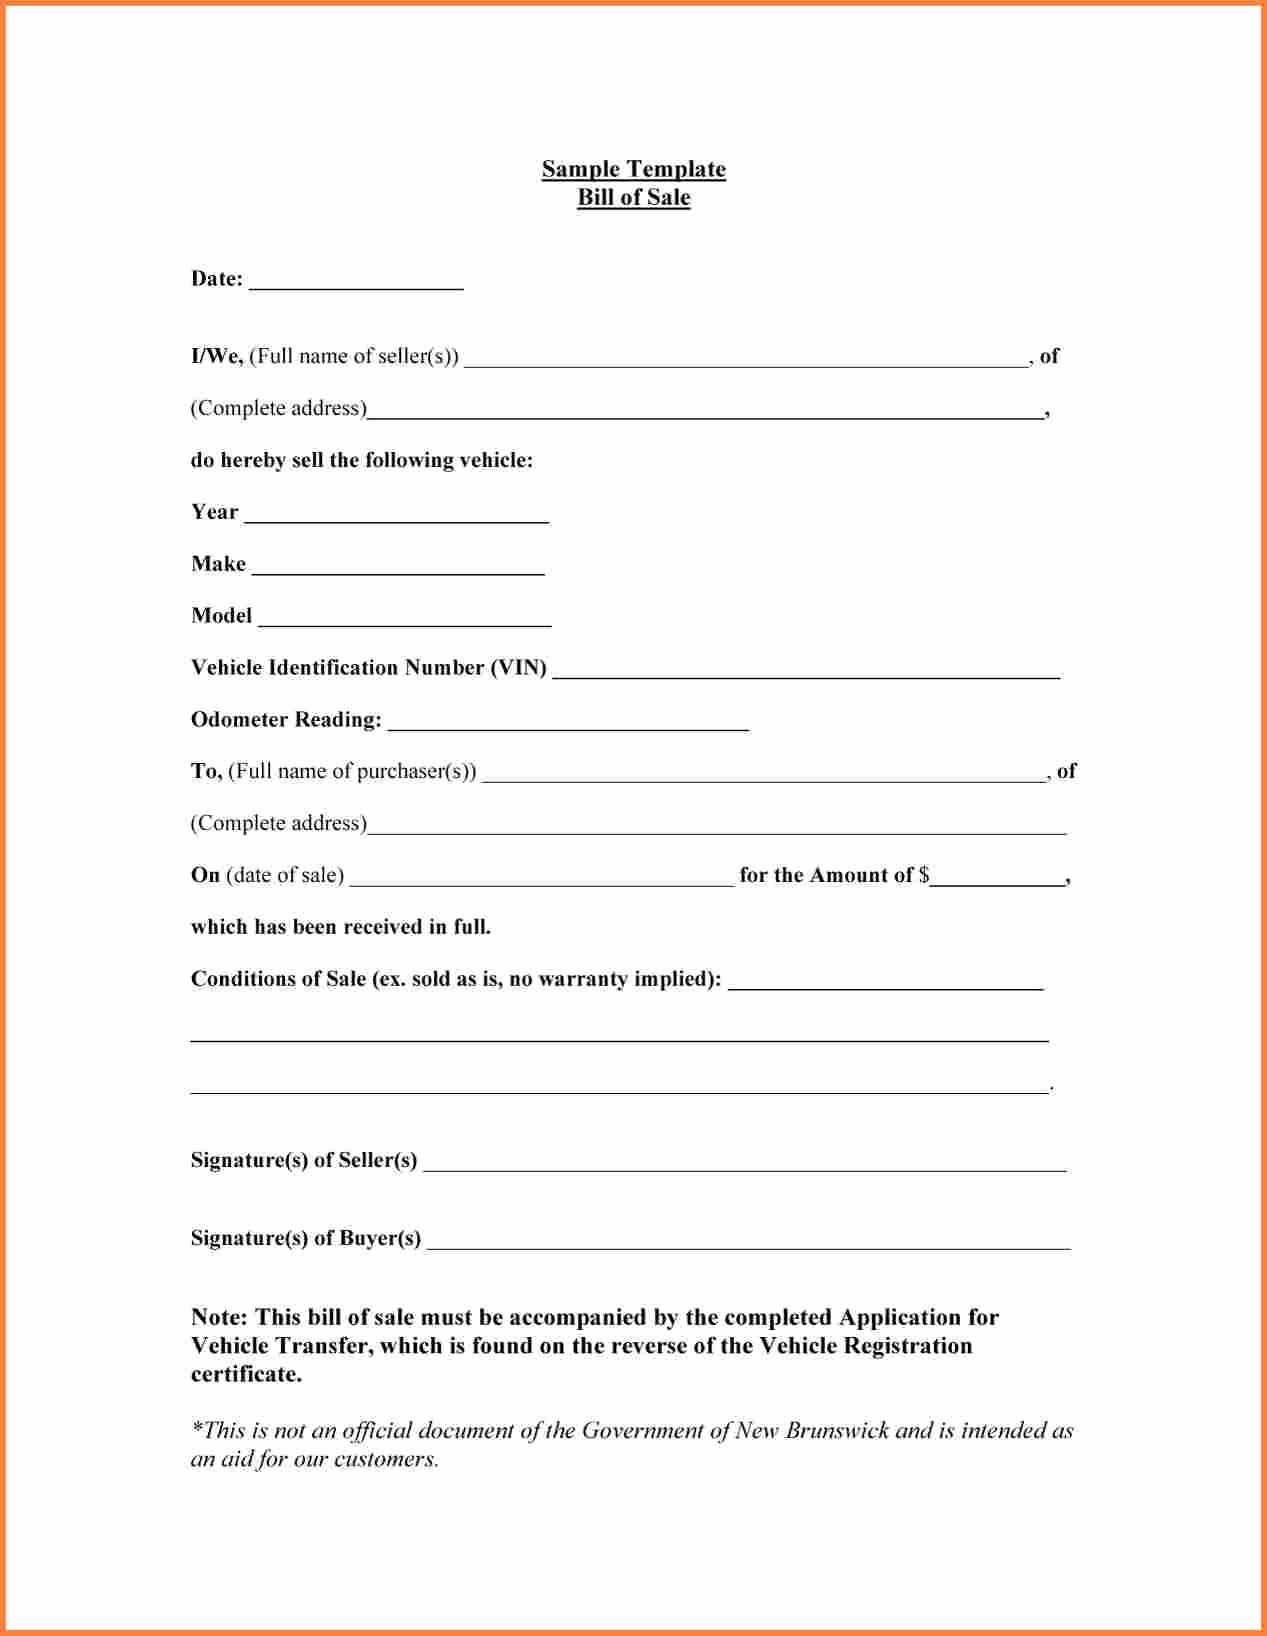 Bill Sell for A Car Beautiful Sample Bill Of Sale form for Car Printable